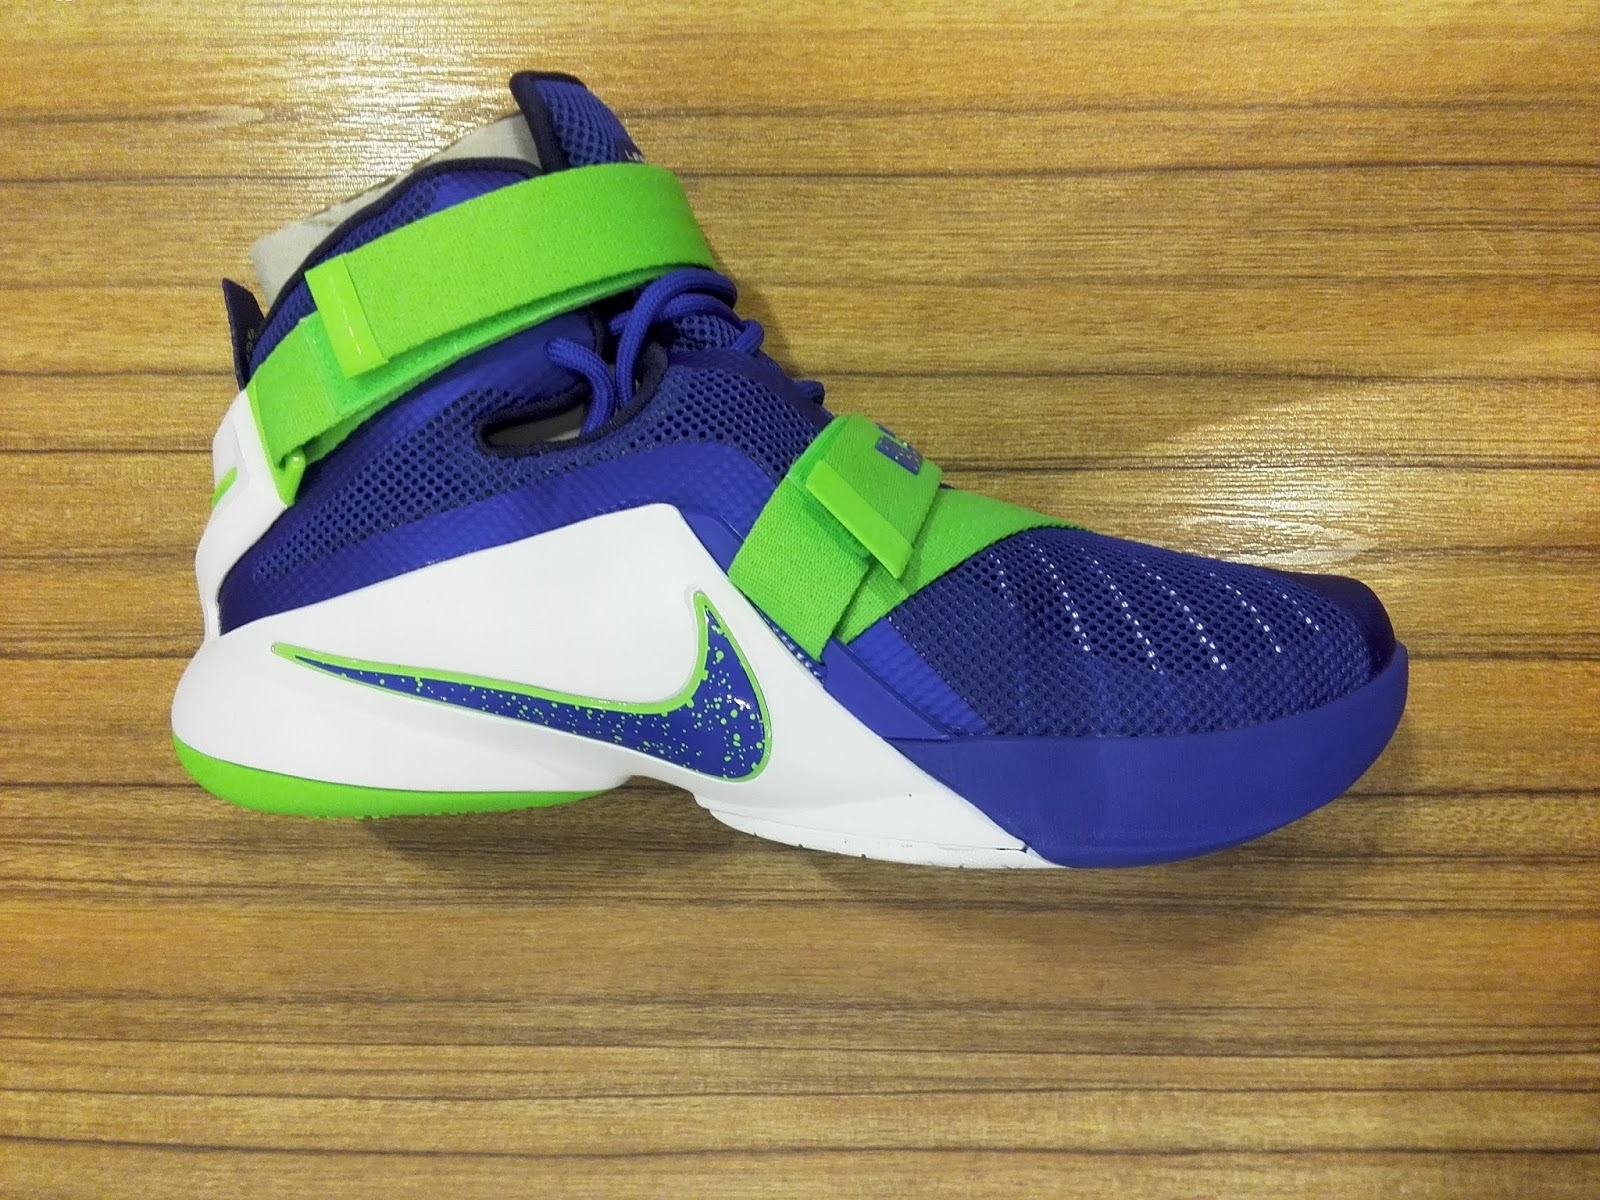 reputable site f5020 3c85c Zoom Soldier 9 Sprite available at Planet Sports | Analykix